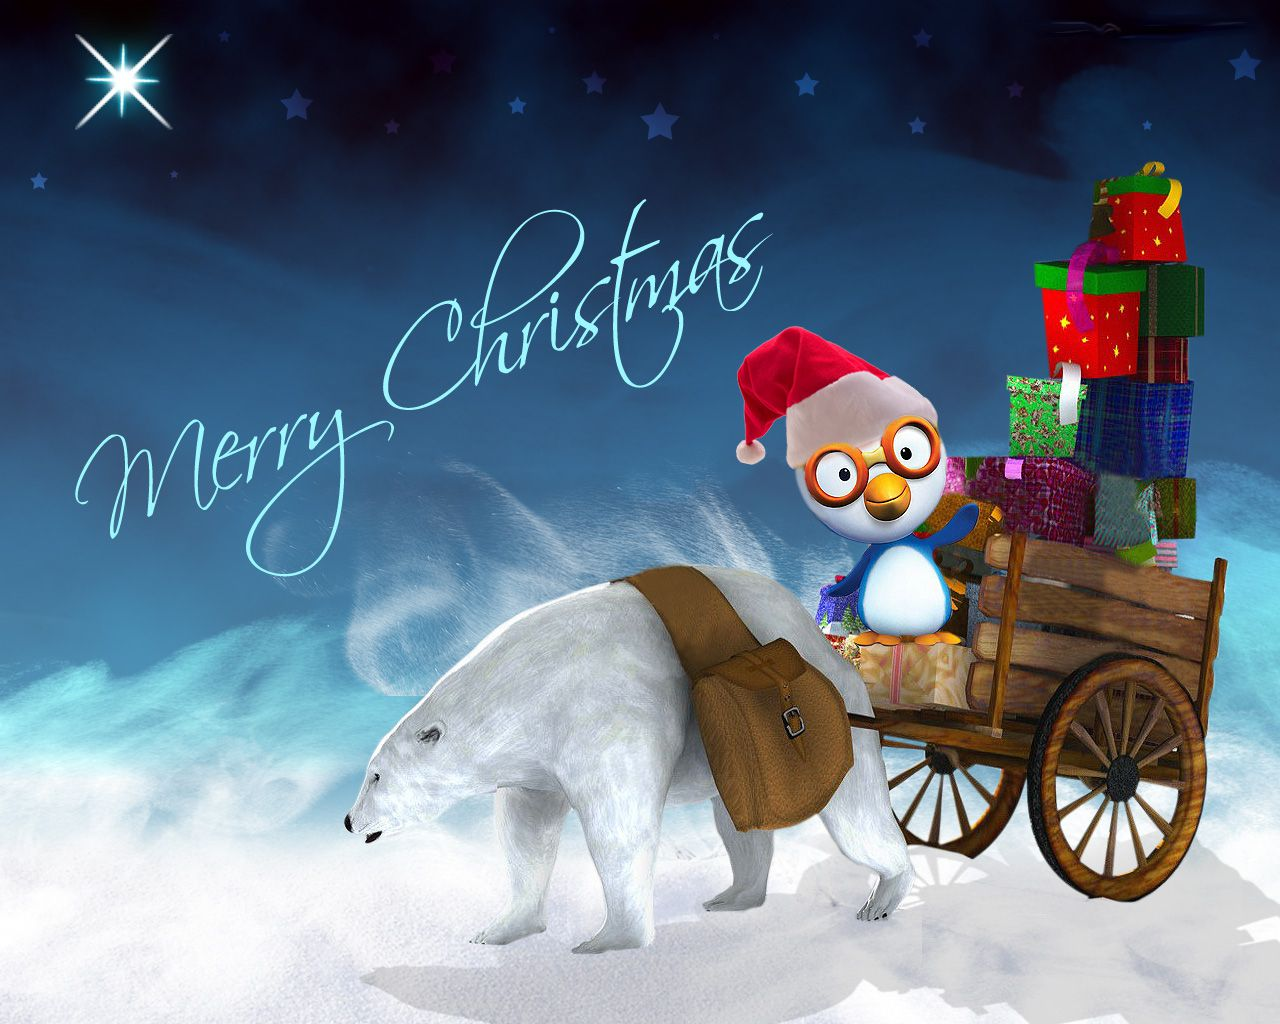 Free greeting Merry Christmas wishes Images - This Blog ...